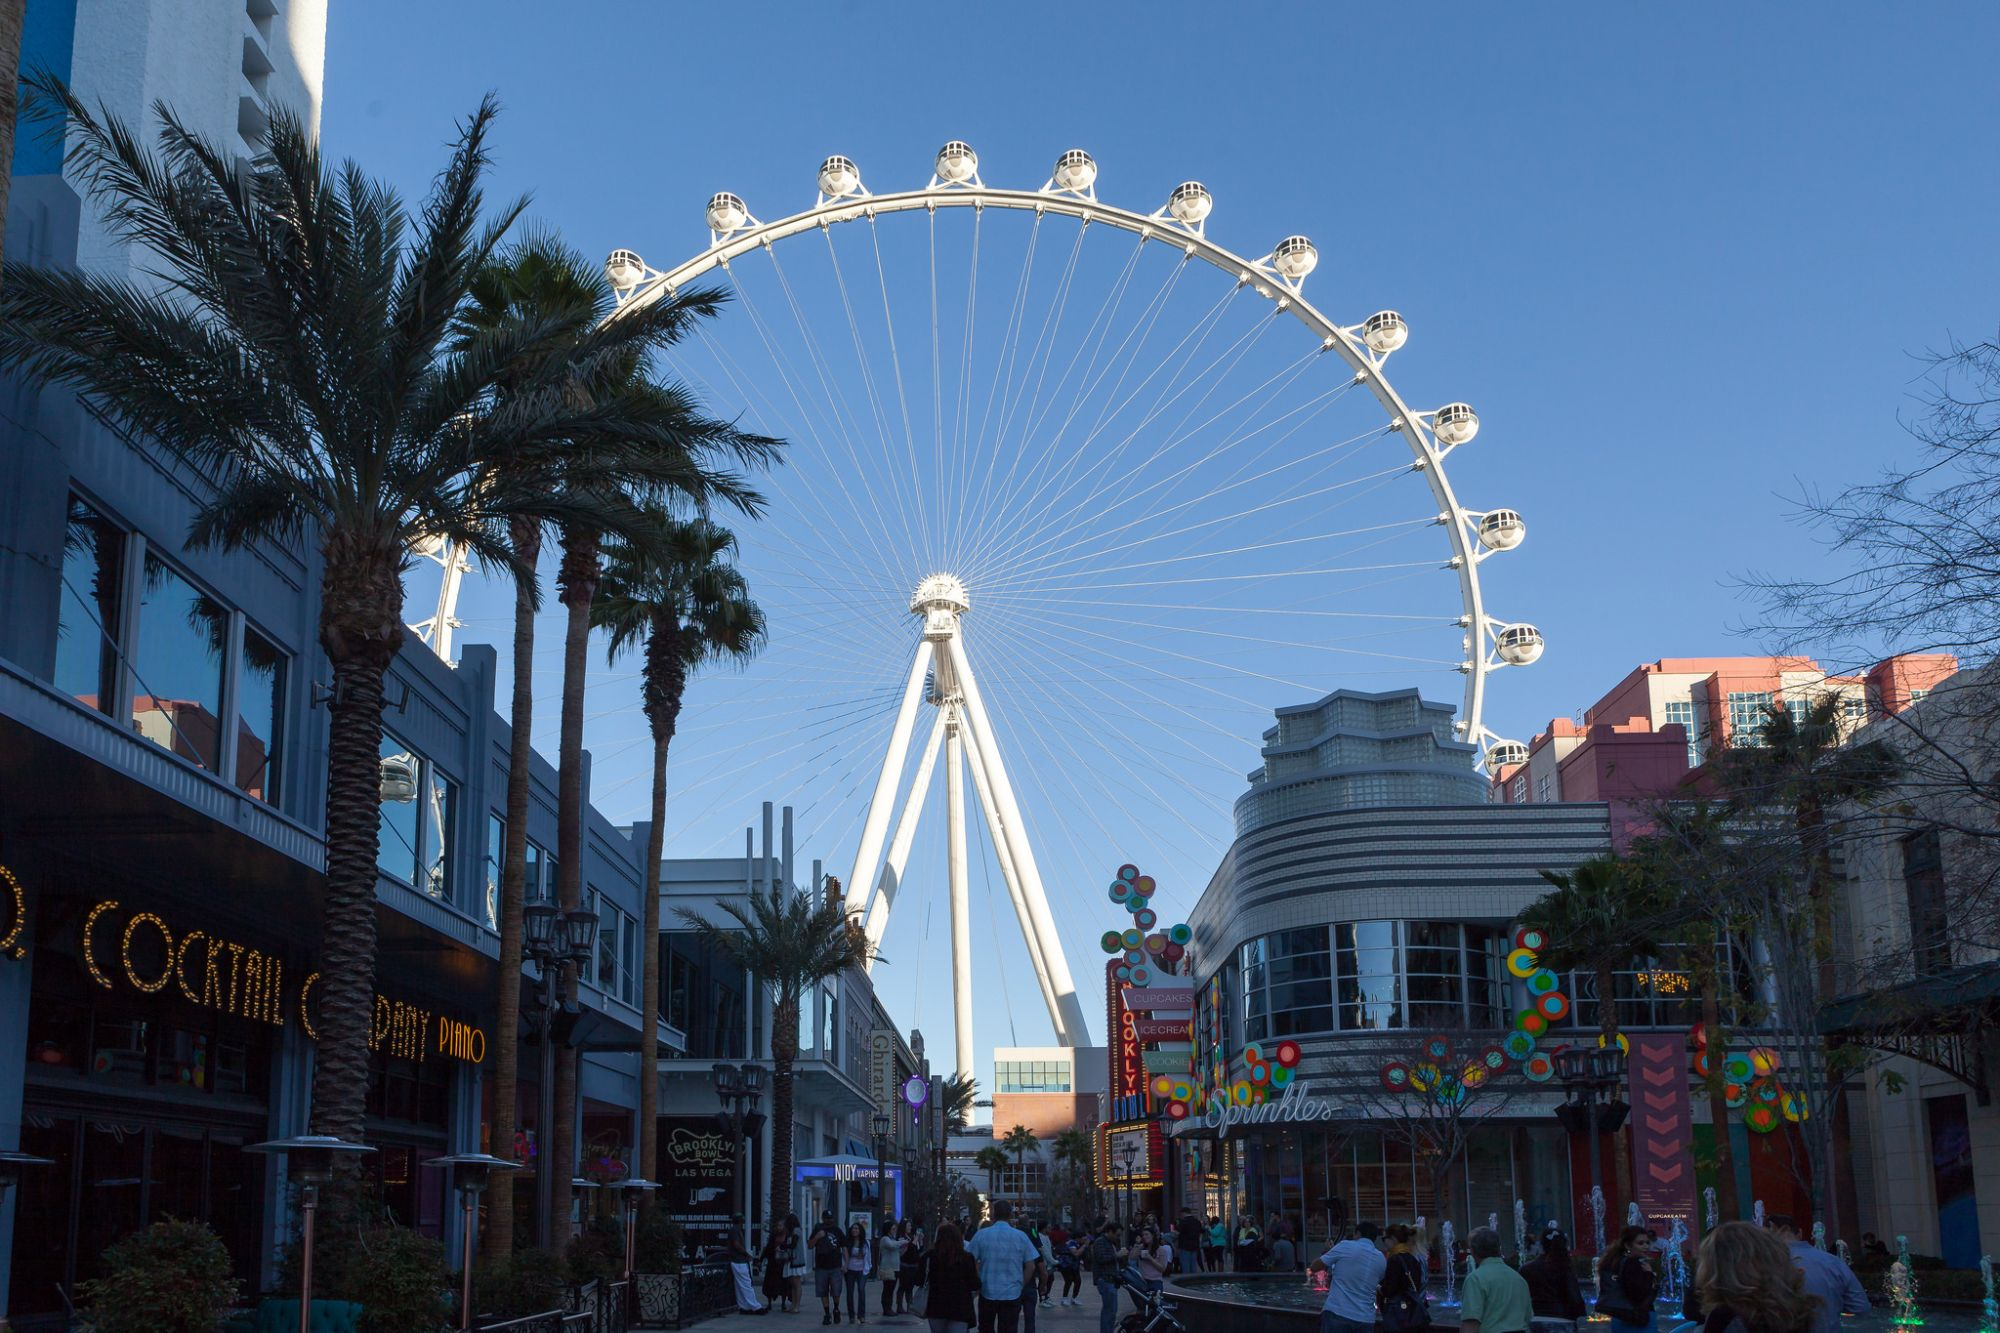 The High Roller – Ride the World's Tallest Ferris Wheel